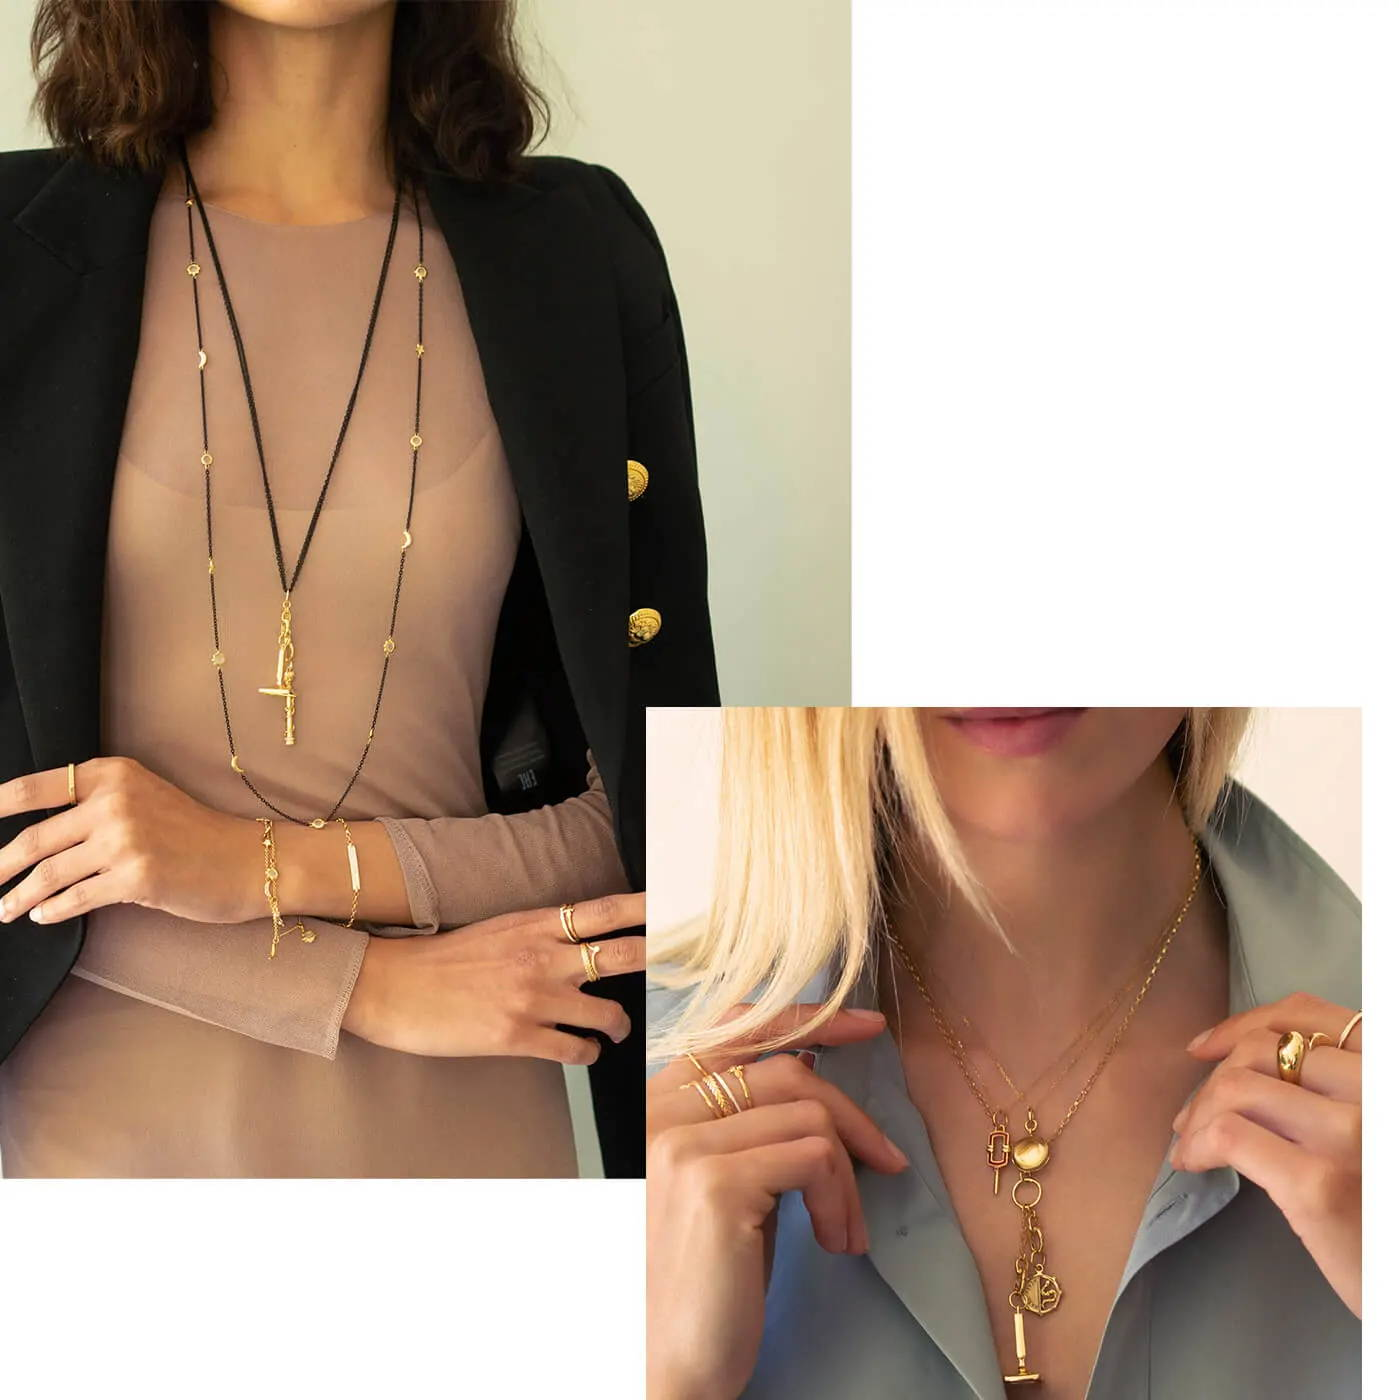 Discover over 250 ways to wear your jewelry